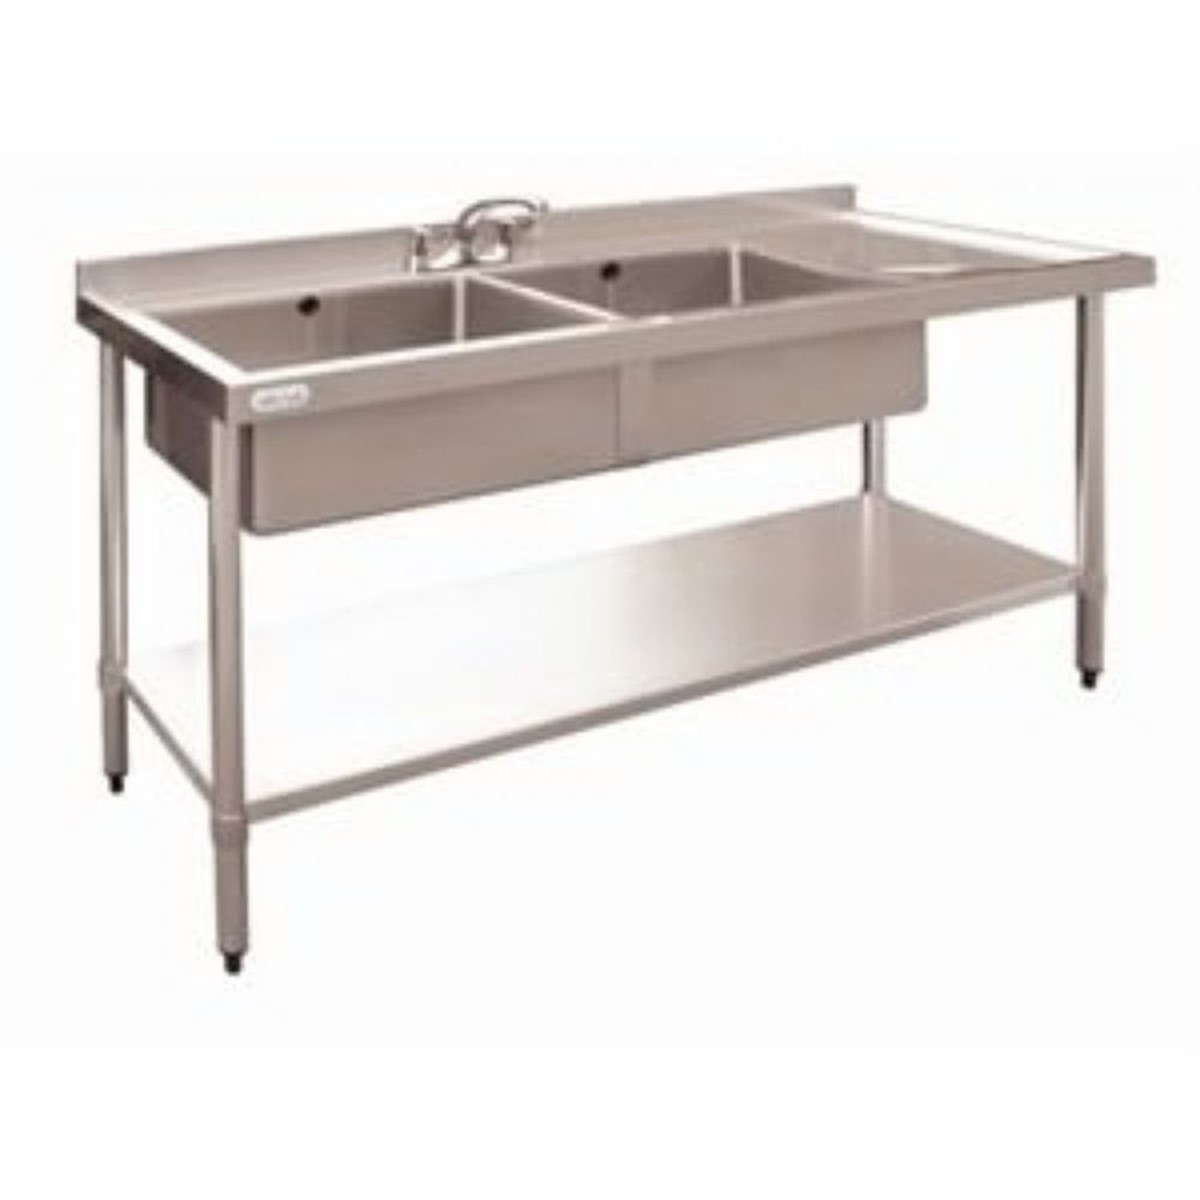 ... Double Sinks Double Stainless Steel Sink, R/H Drainer - Hampshire